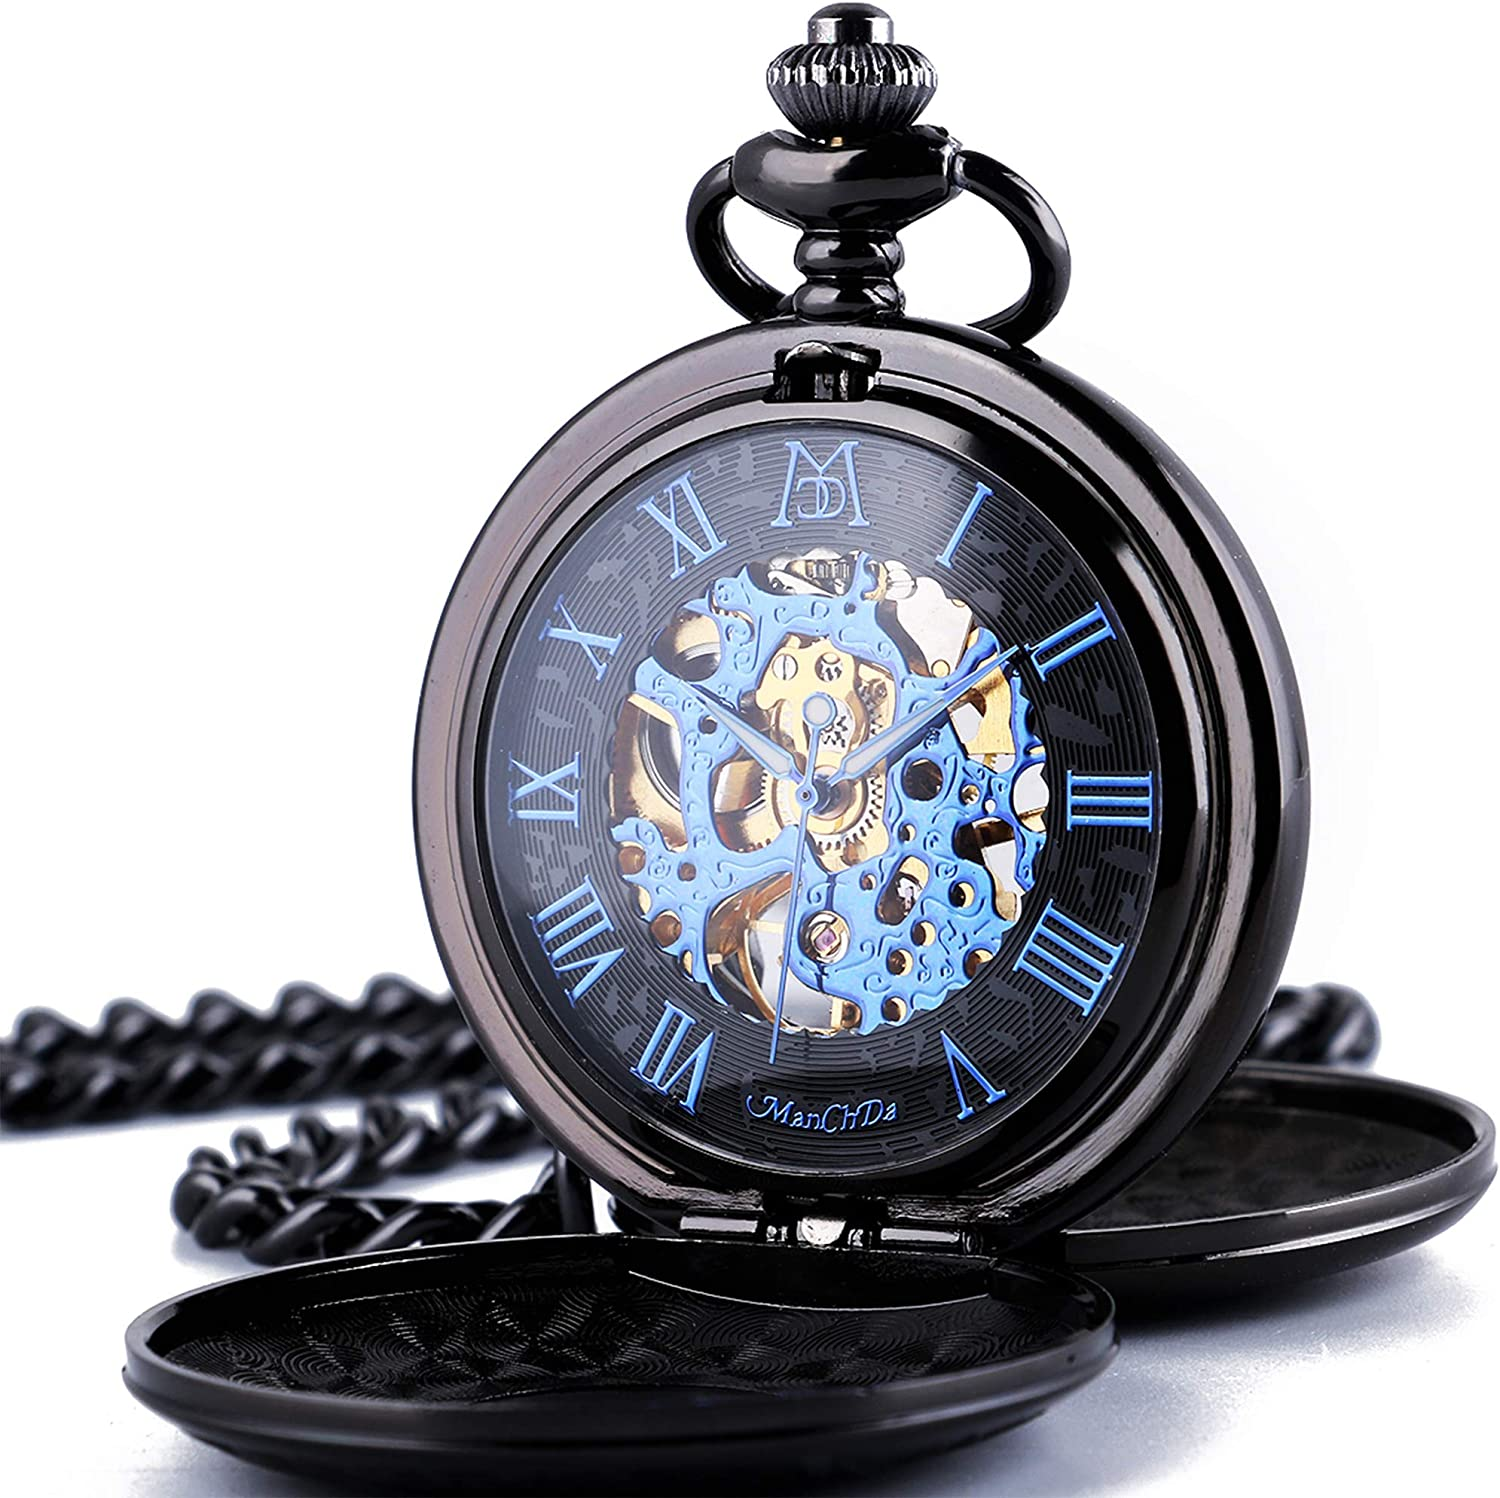 ManChDa Mechanical Roman Numerals Dial Skeleton Pocket Watches with Box and Chains for Mens Women